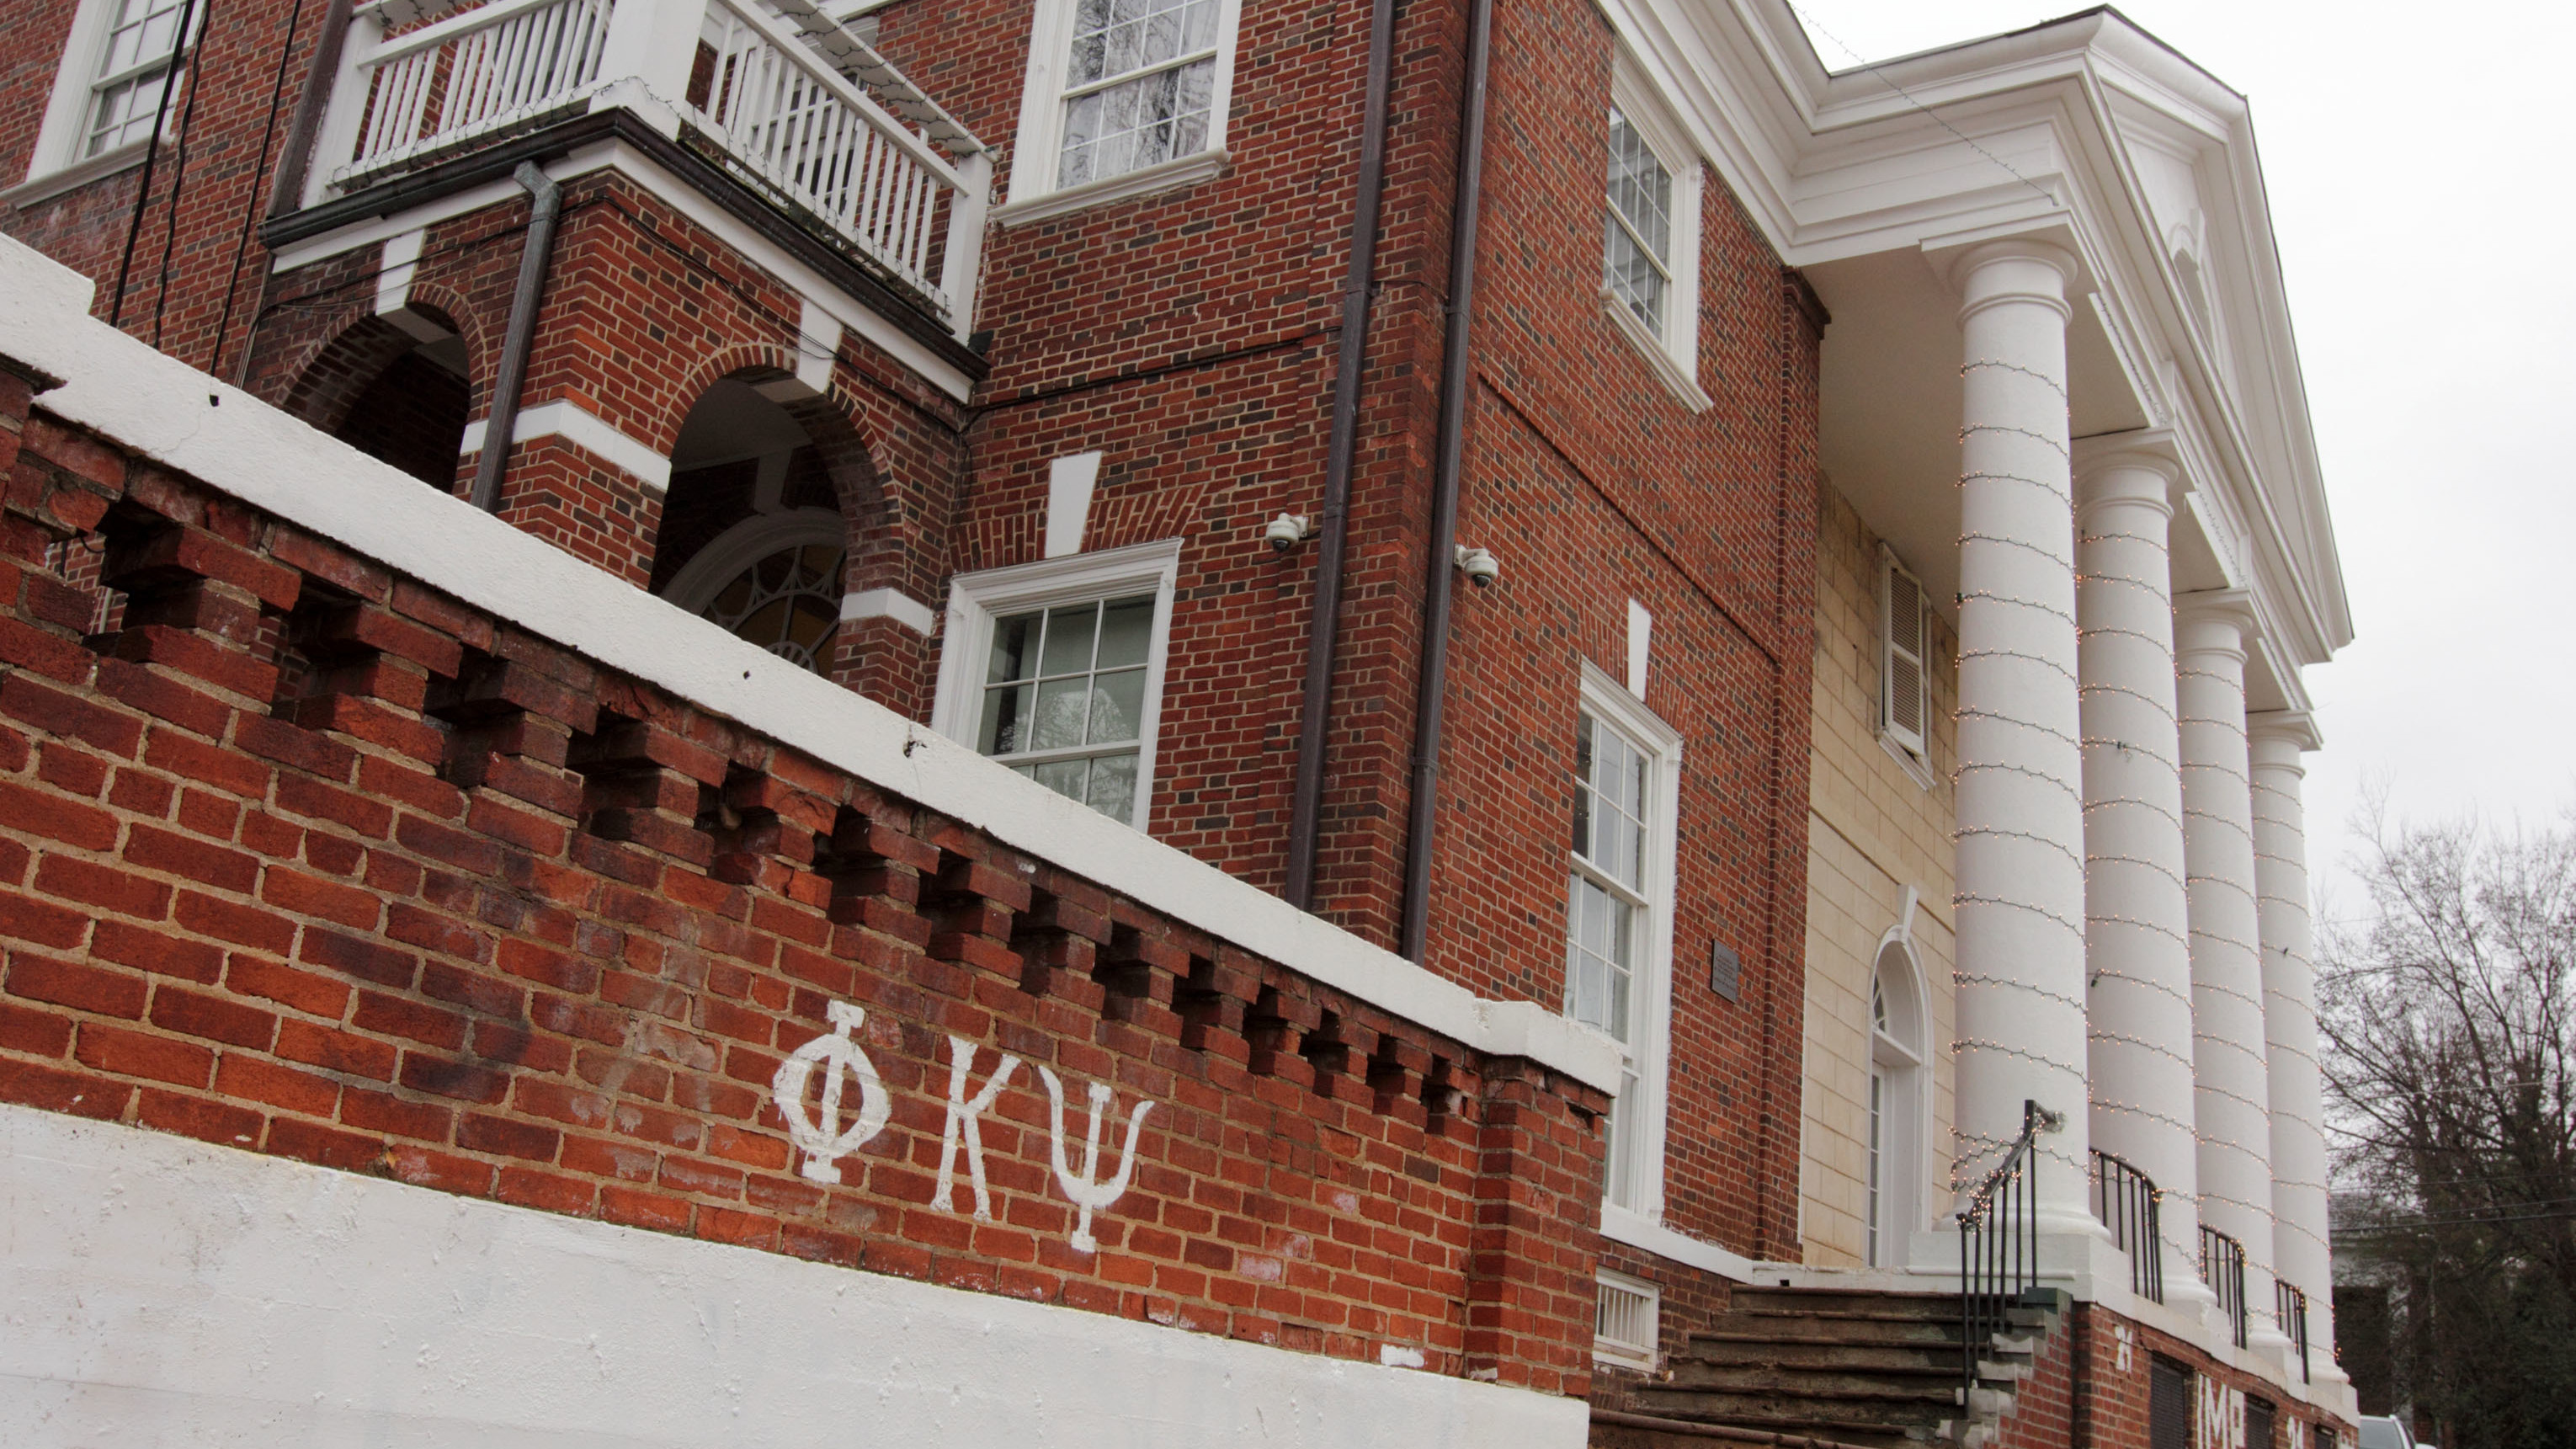 Defamation lawsuit vs Rolling Stone over rape article is revived